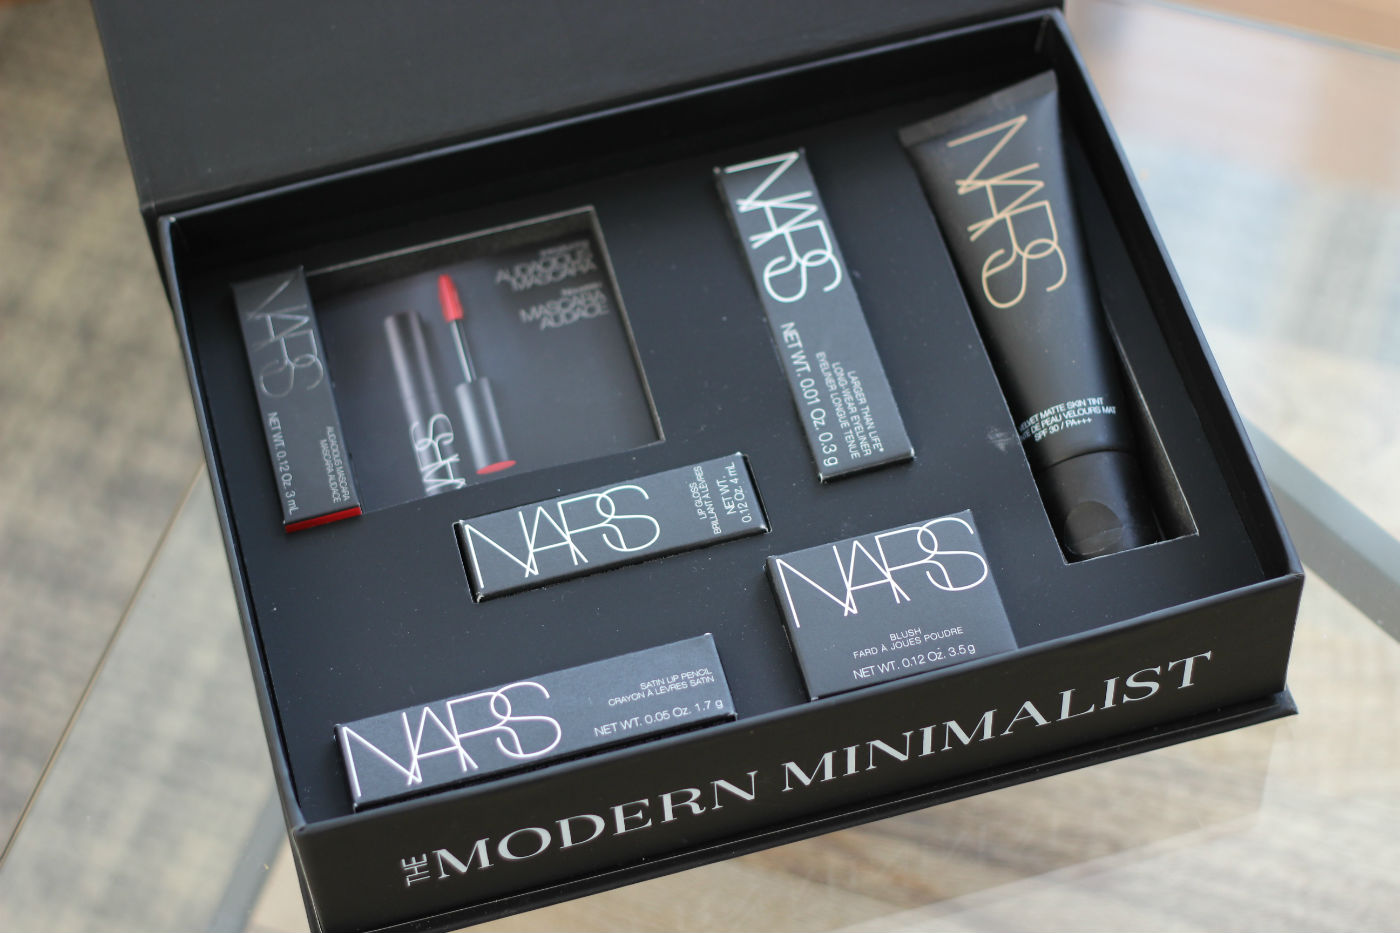 Limited Edition Nars Beauty Box For Space Nk Lily Pebbles